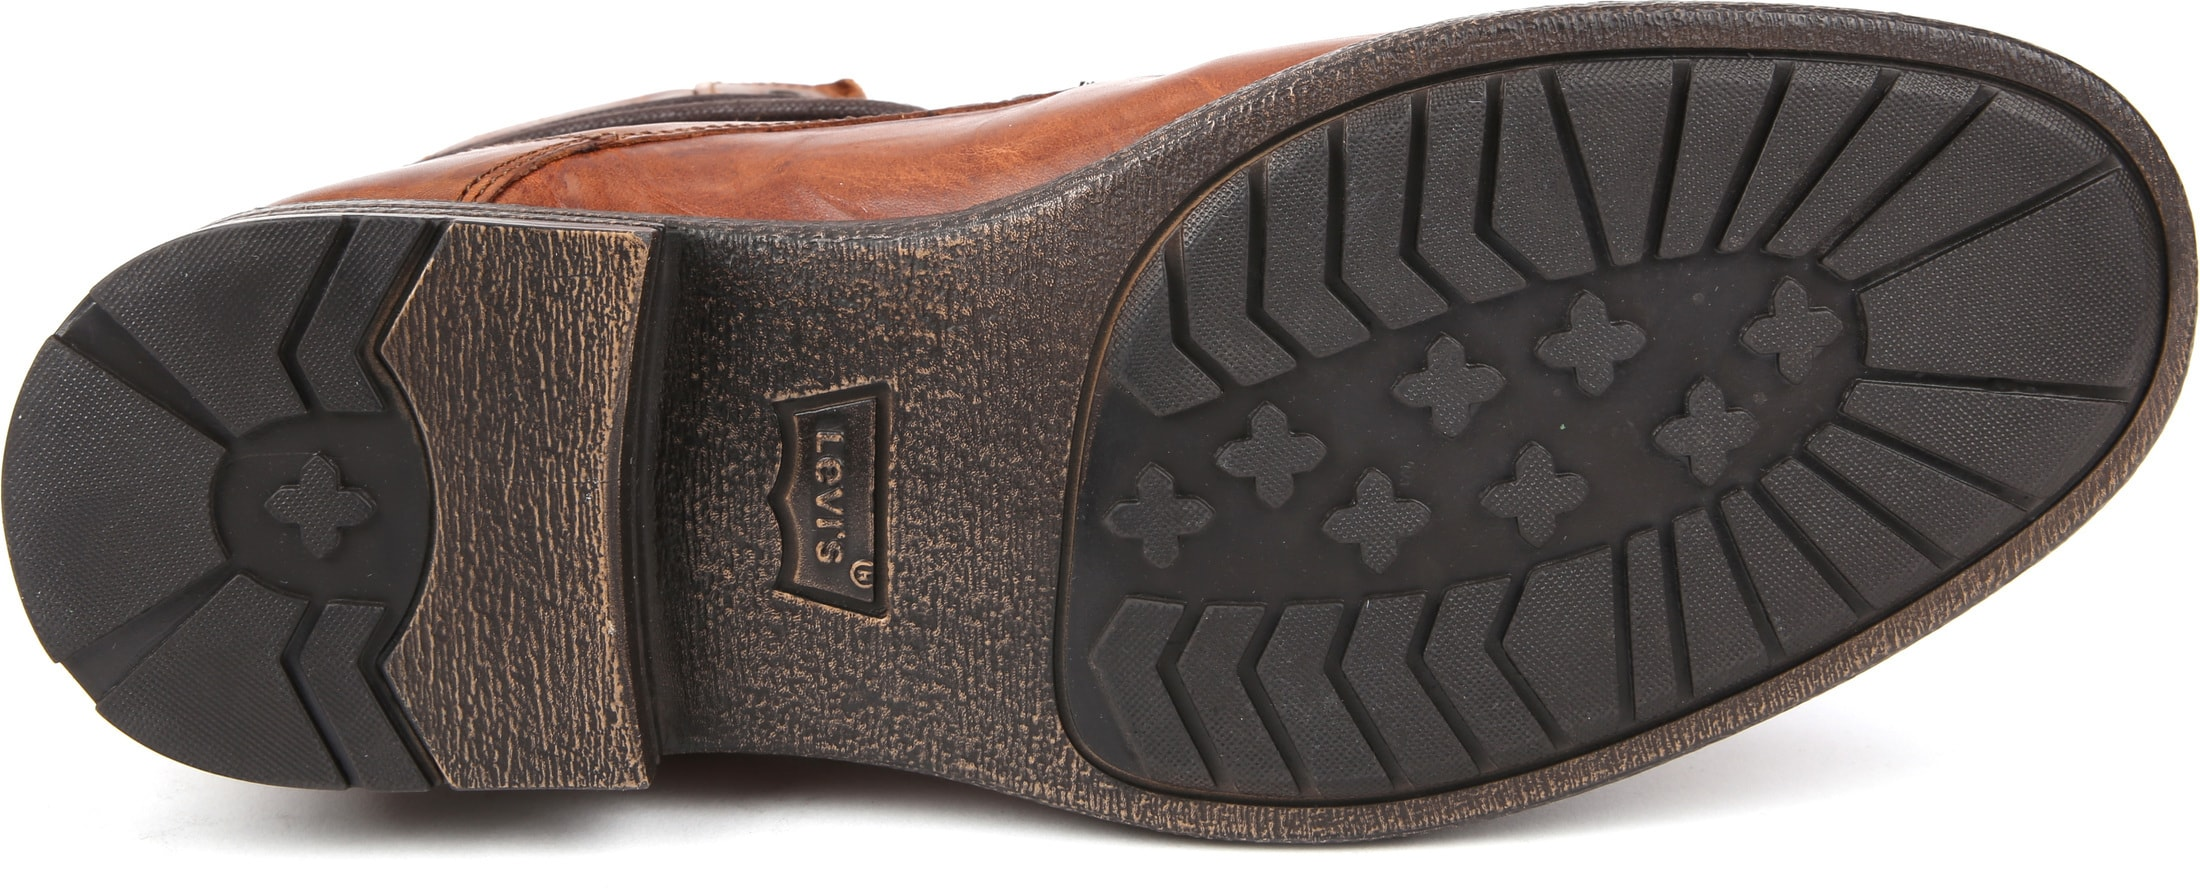 Levi's Boots Emerson Brown Lether foto 4